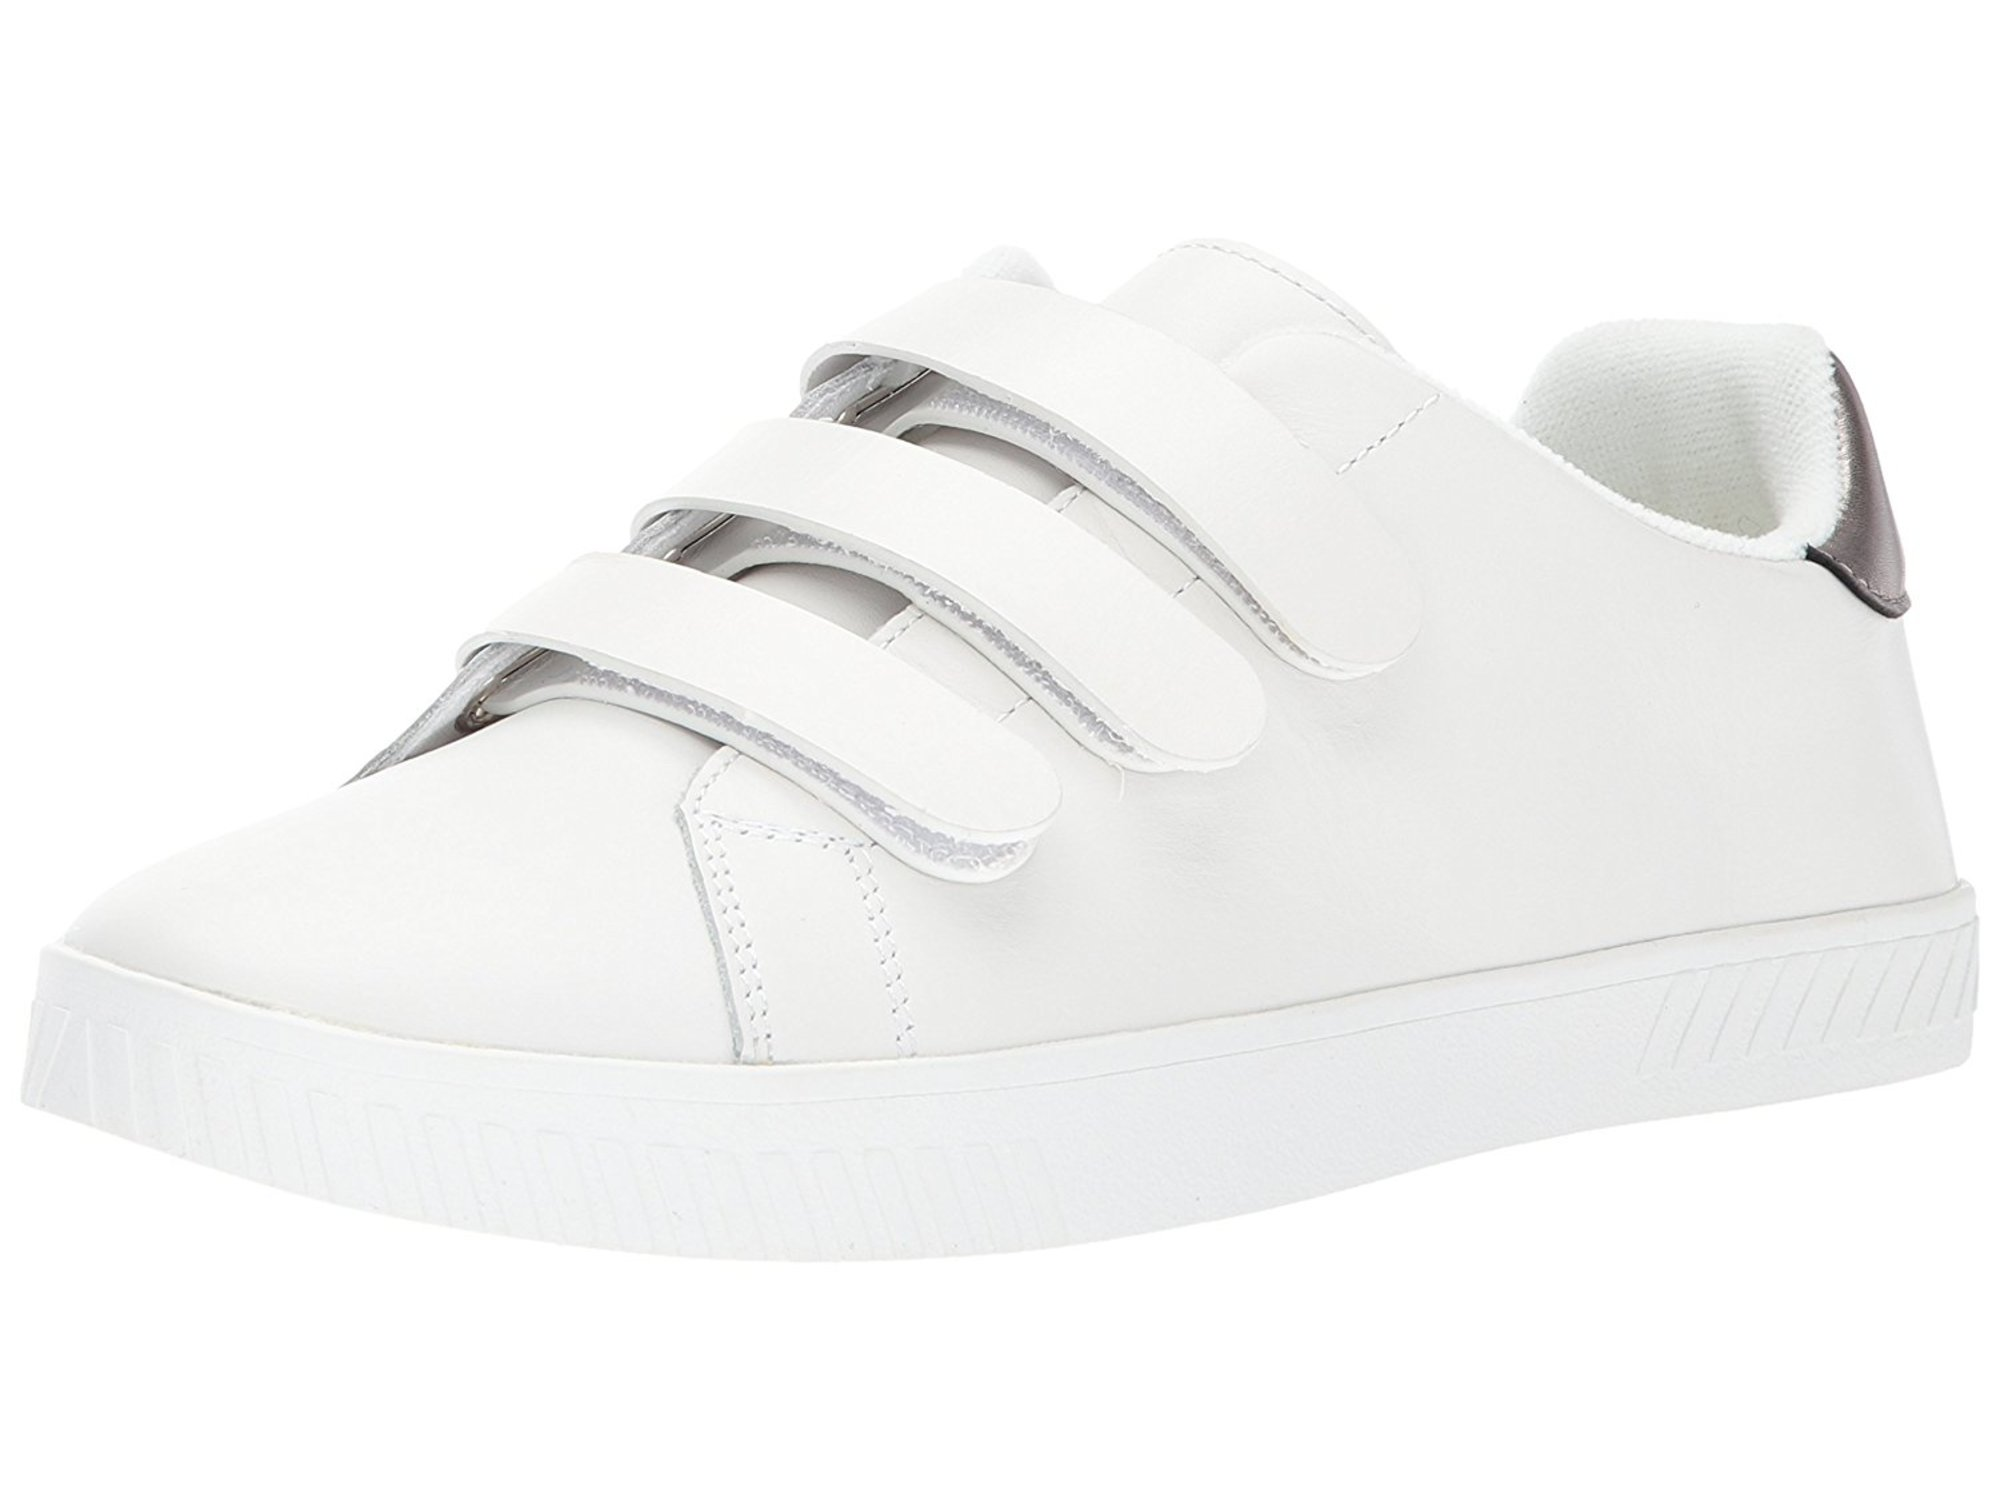 Tretorn Men's CARRY2 Sneaker by Tretorn